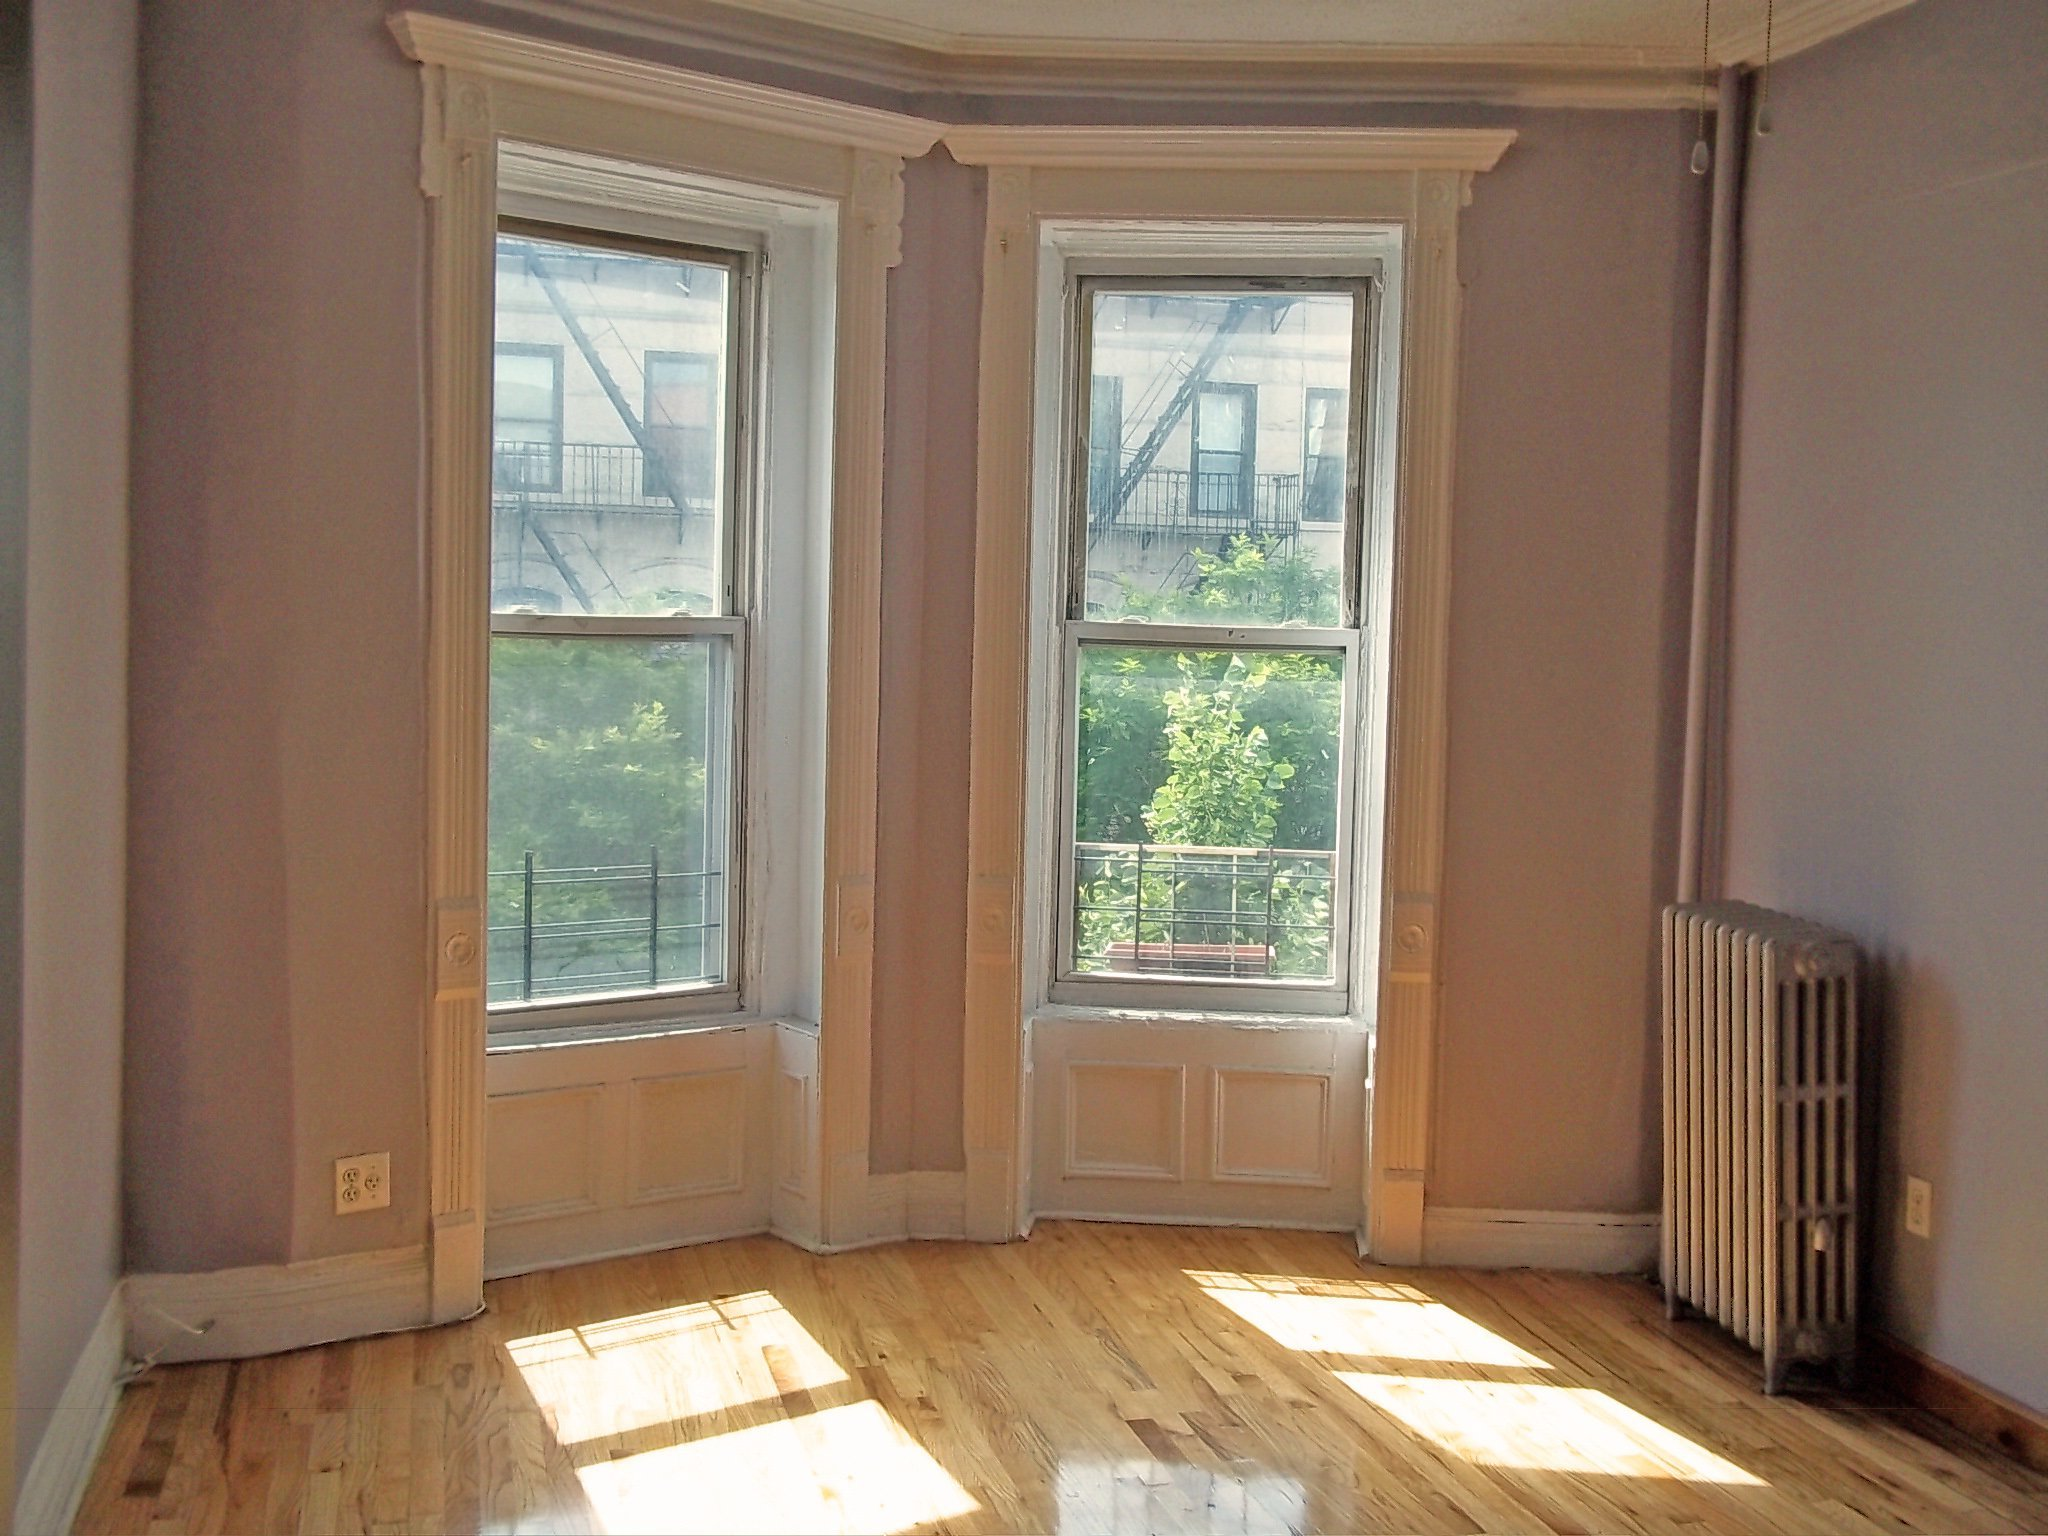 Bed Stuy 1 Bedroom Apartment For Rent Crg3114